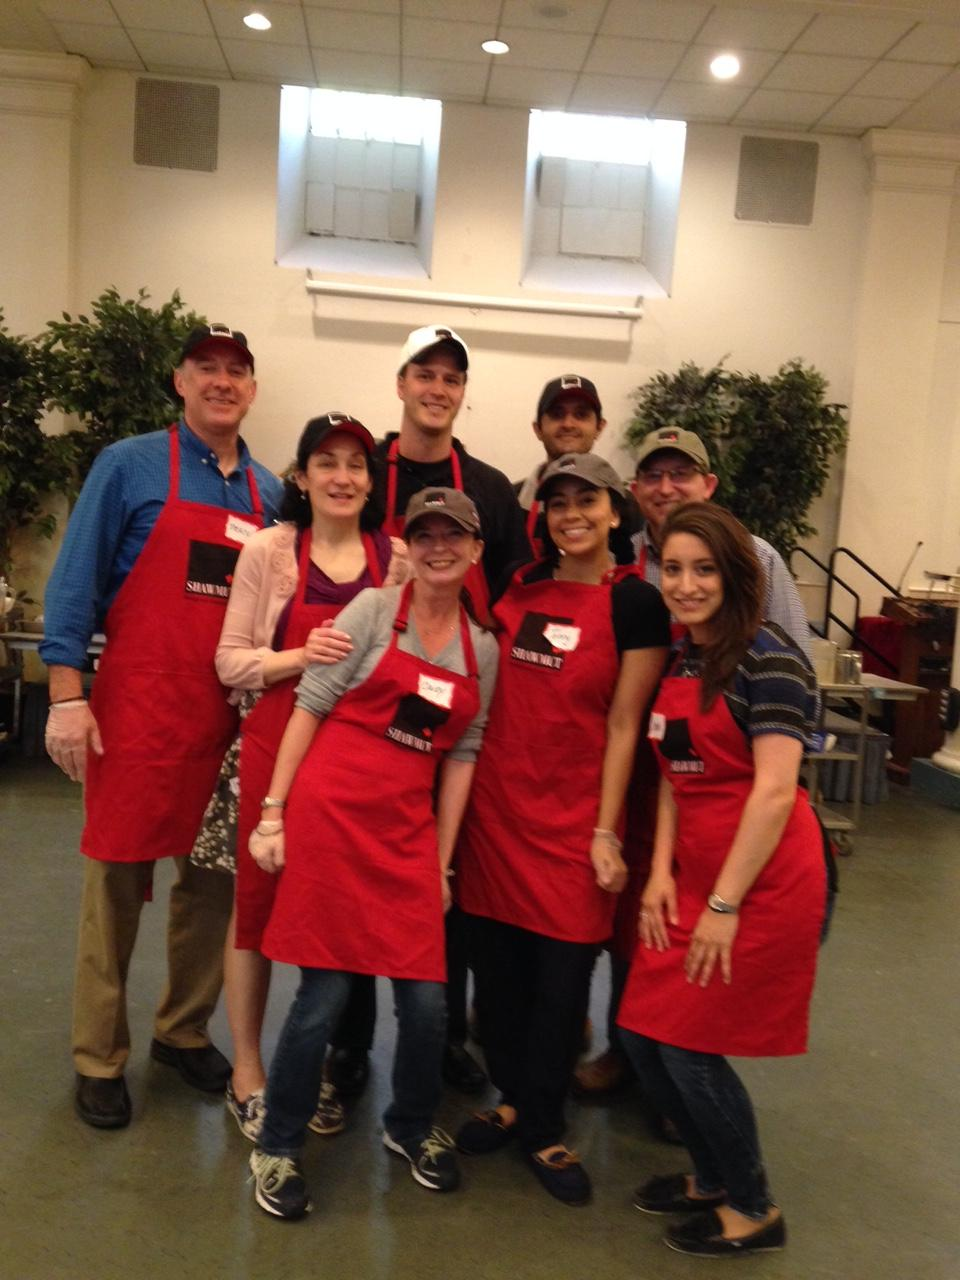 Shawmut volunteers ready to go serve lunch at the All Souls Friday Soup Kitchen in New York.